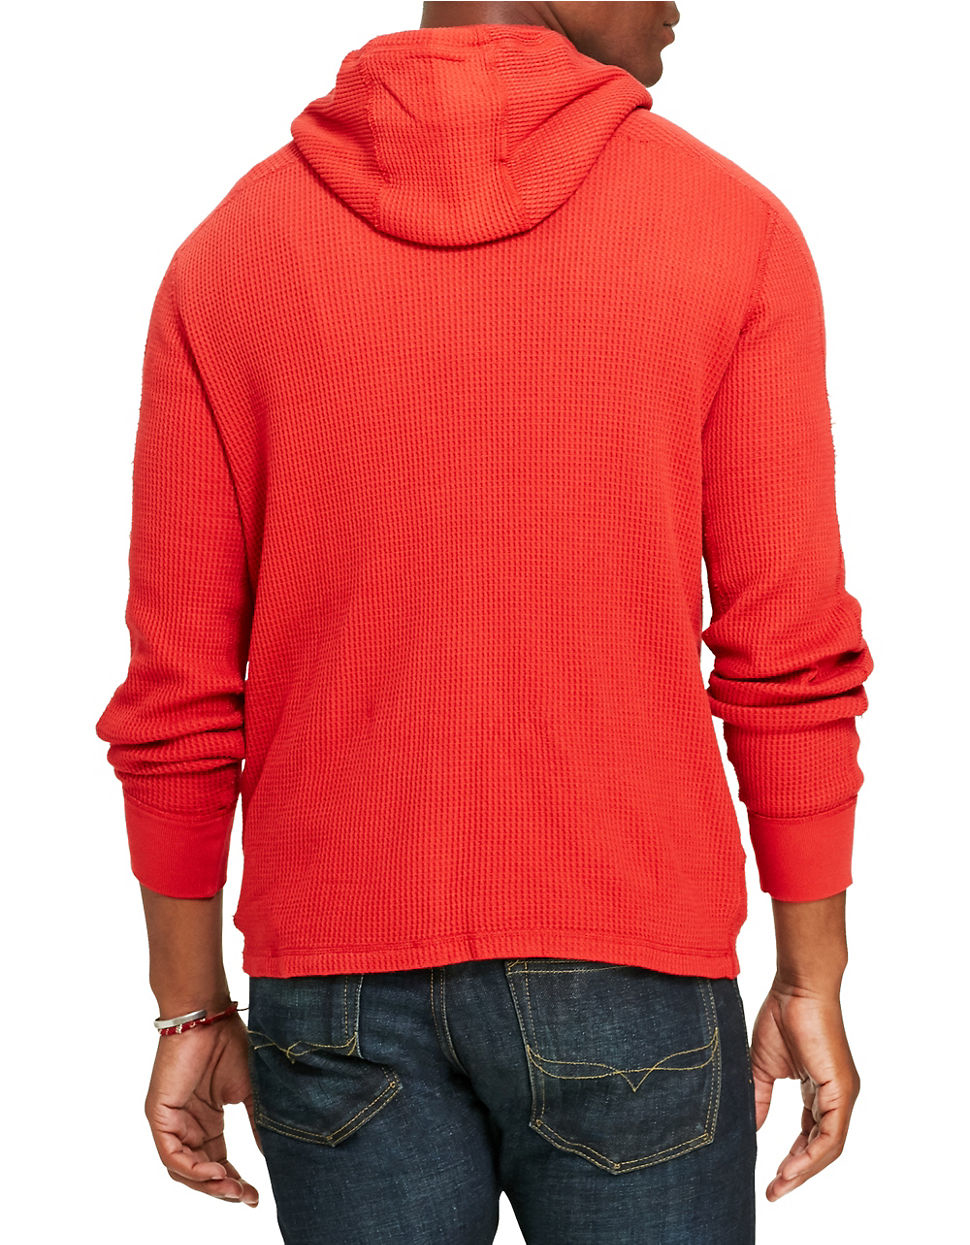 polo ralph lauren waffle knit cotton hoodie in red for men. Black Bedroom Furniture Sets. Home Design Ideas